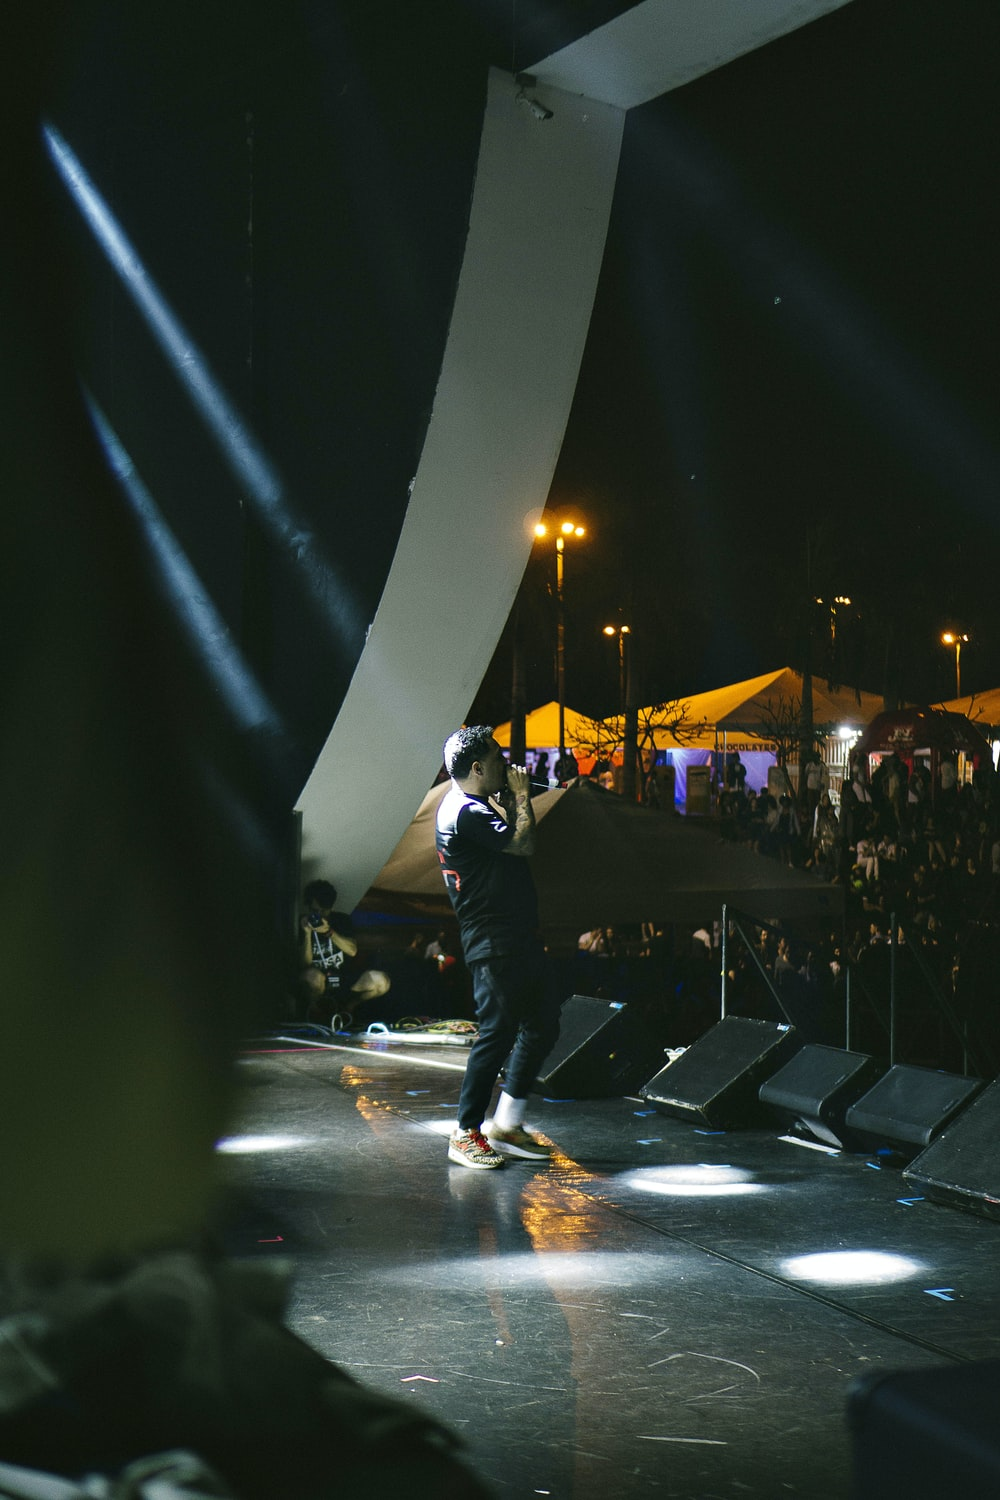 man performing on concert stage